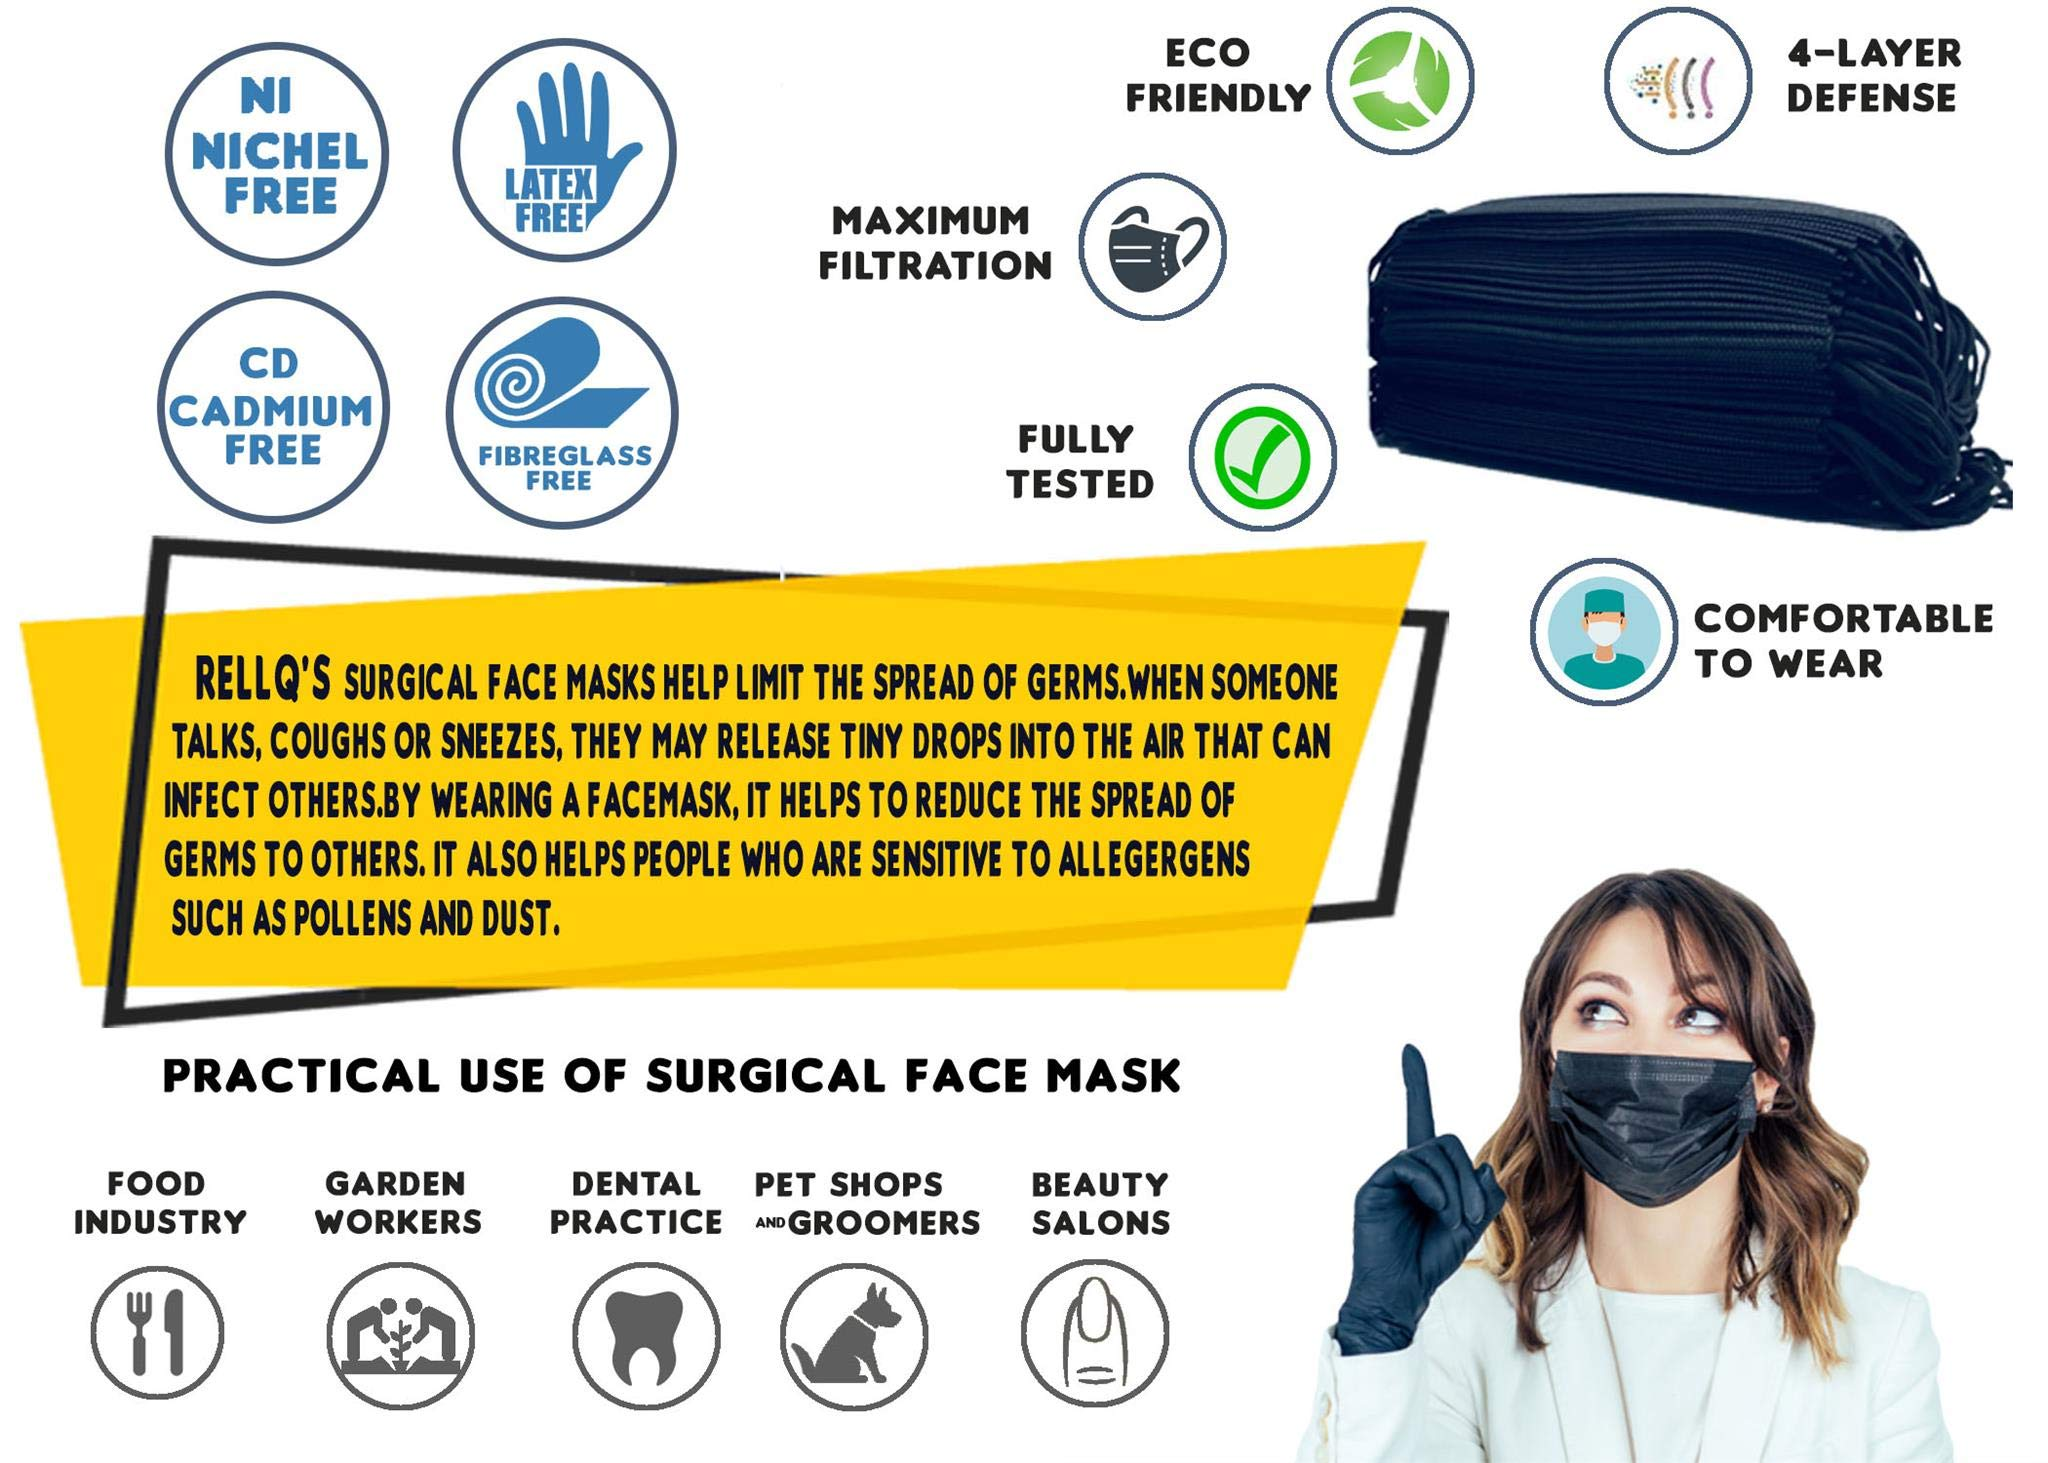 RellQ Disposable Earloop Surgical Mask Medical Dental Face Flu Mask, Premium Soft Four Layer (3 Ply + Carbon Filter) Hypoallergenic Immune System Protection, 60 Pcs + 5 Face Mask for Kids, Black Color